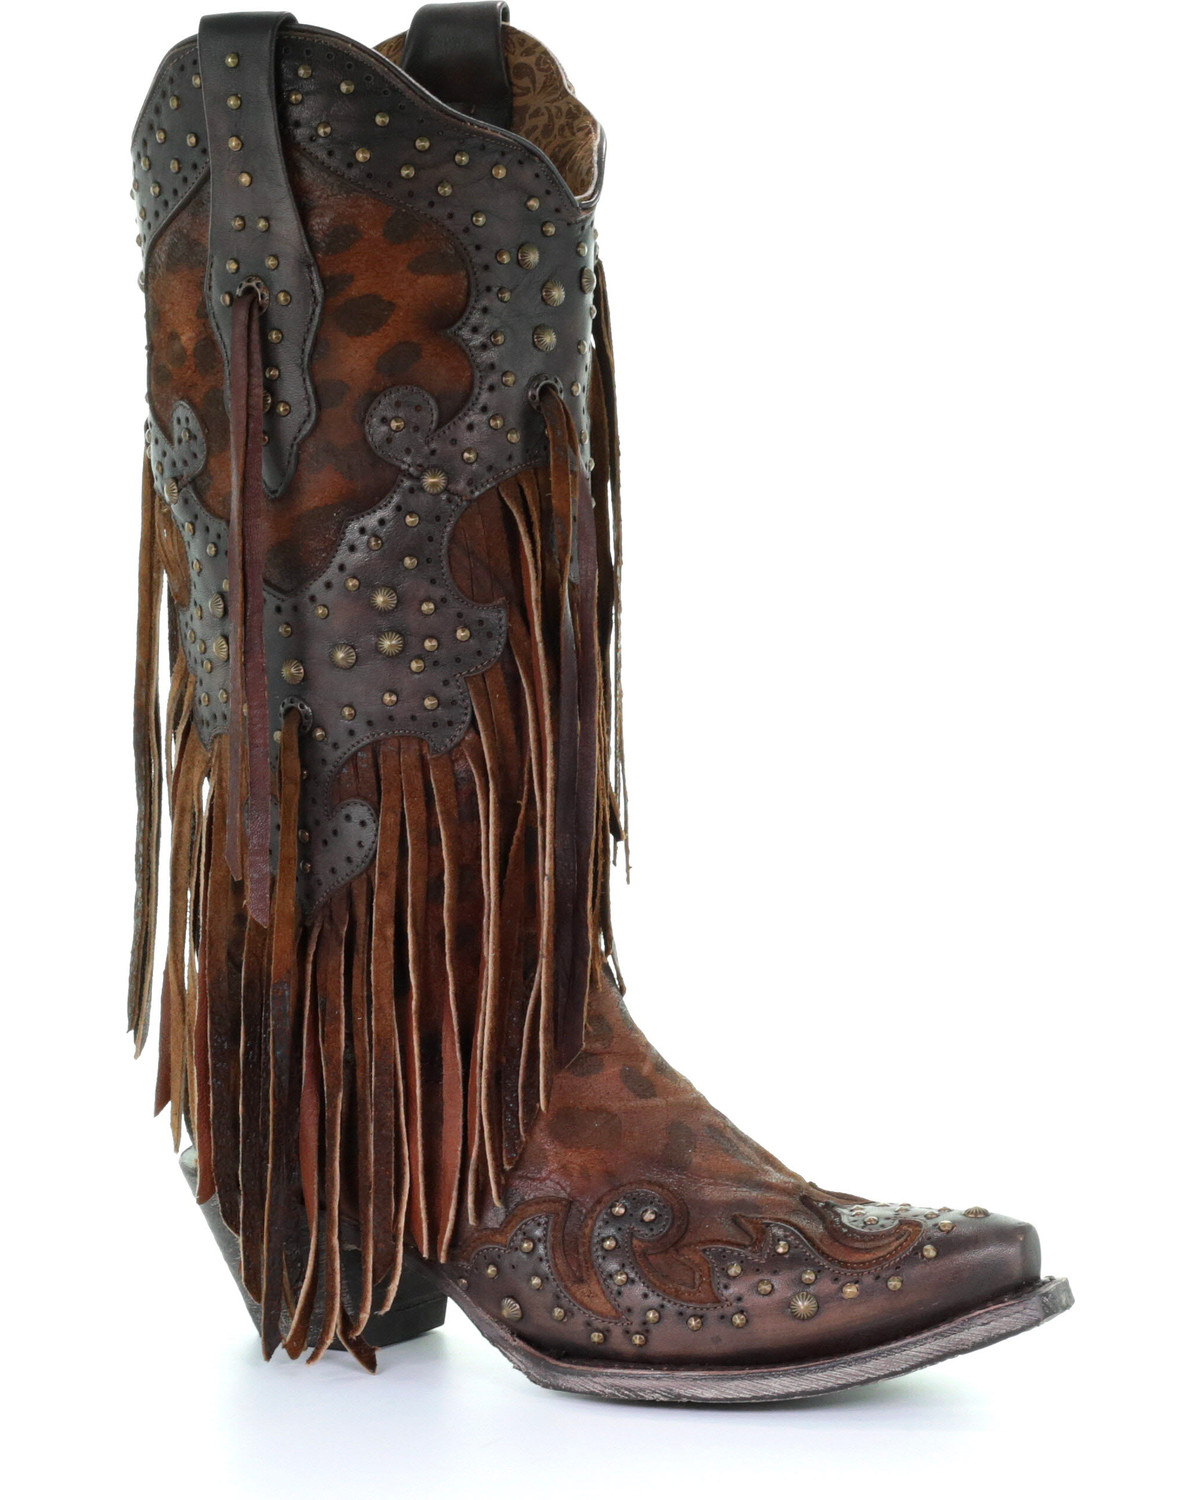 3805f6e6c426 Zoomed Image Corral Women's Leopard Stud & Fringe Cowgirl Boots - Snip Toe,  Honey, ...